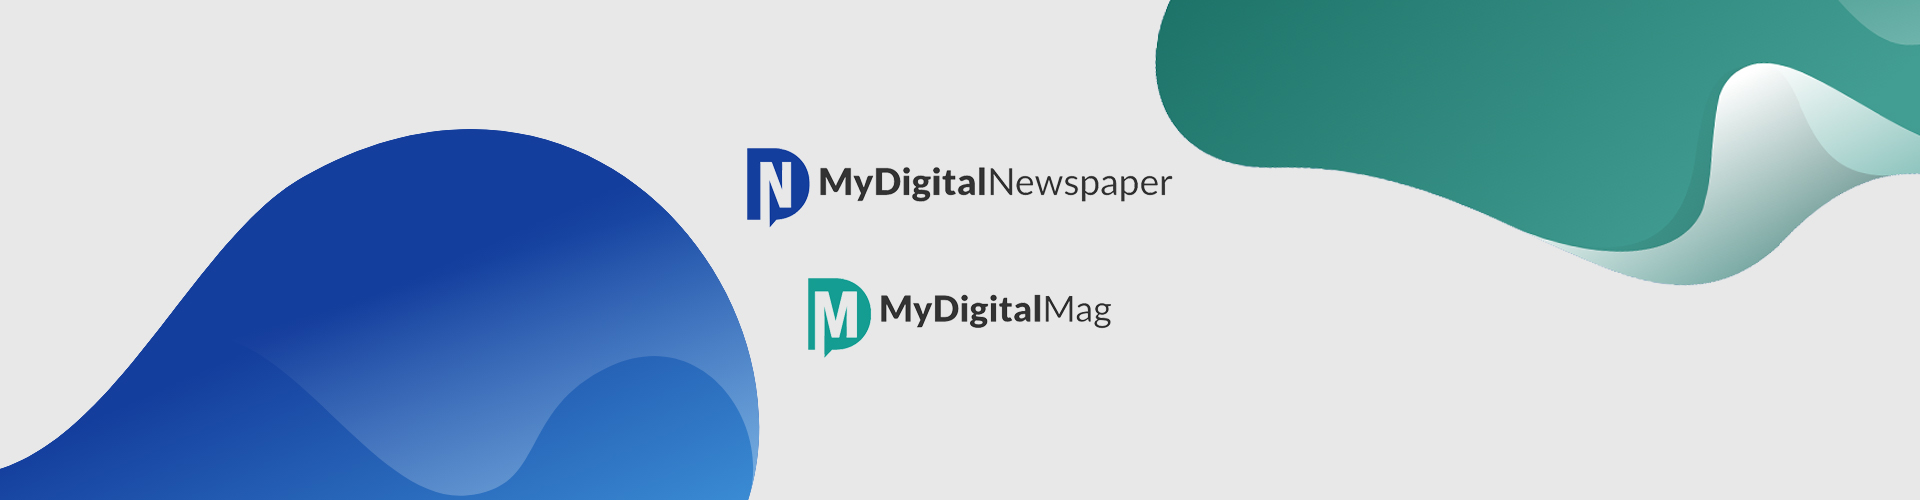 Header image of MyDigitalNewspaper & MyDigitalMag